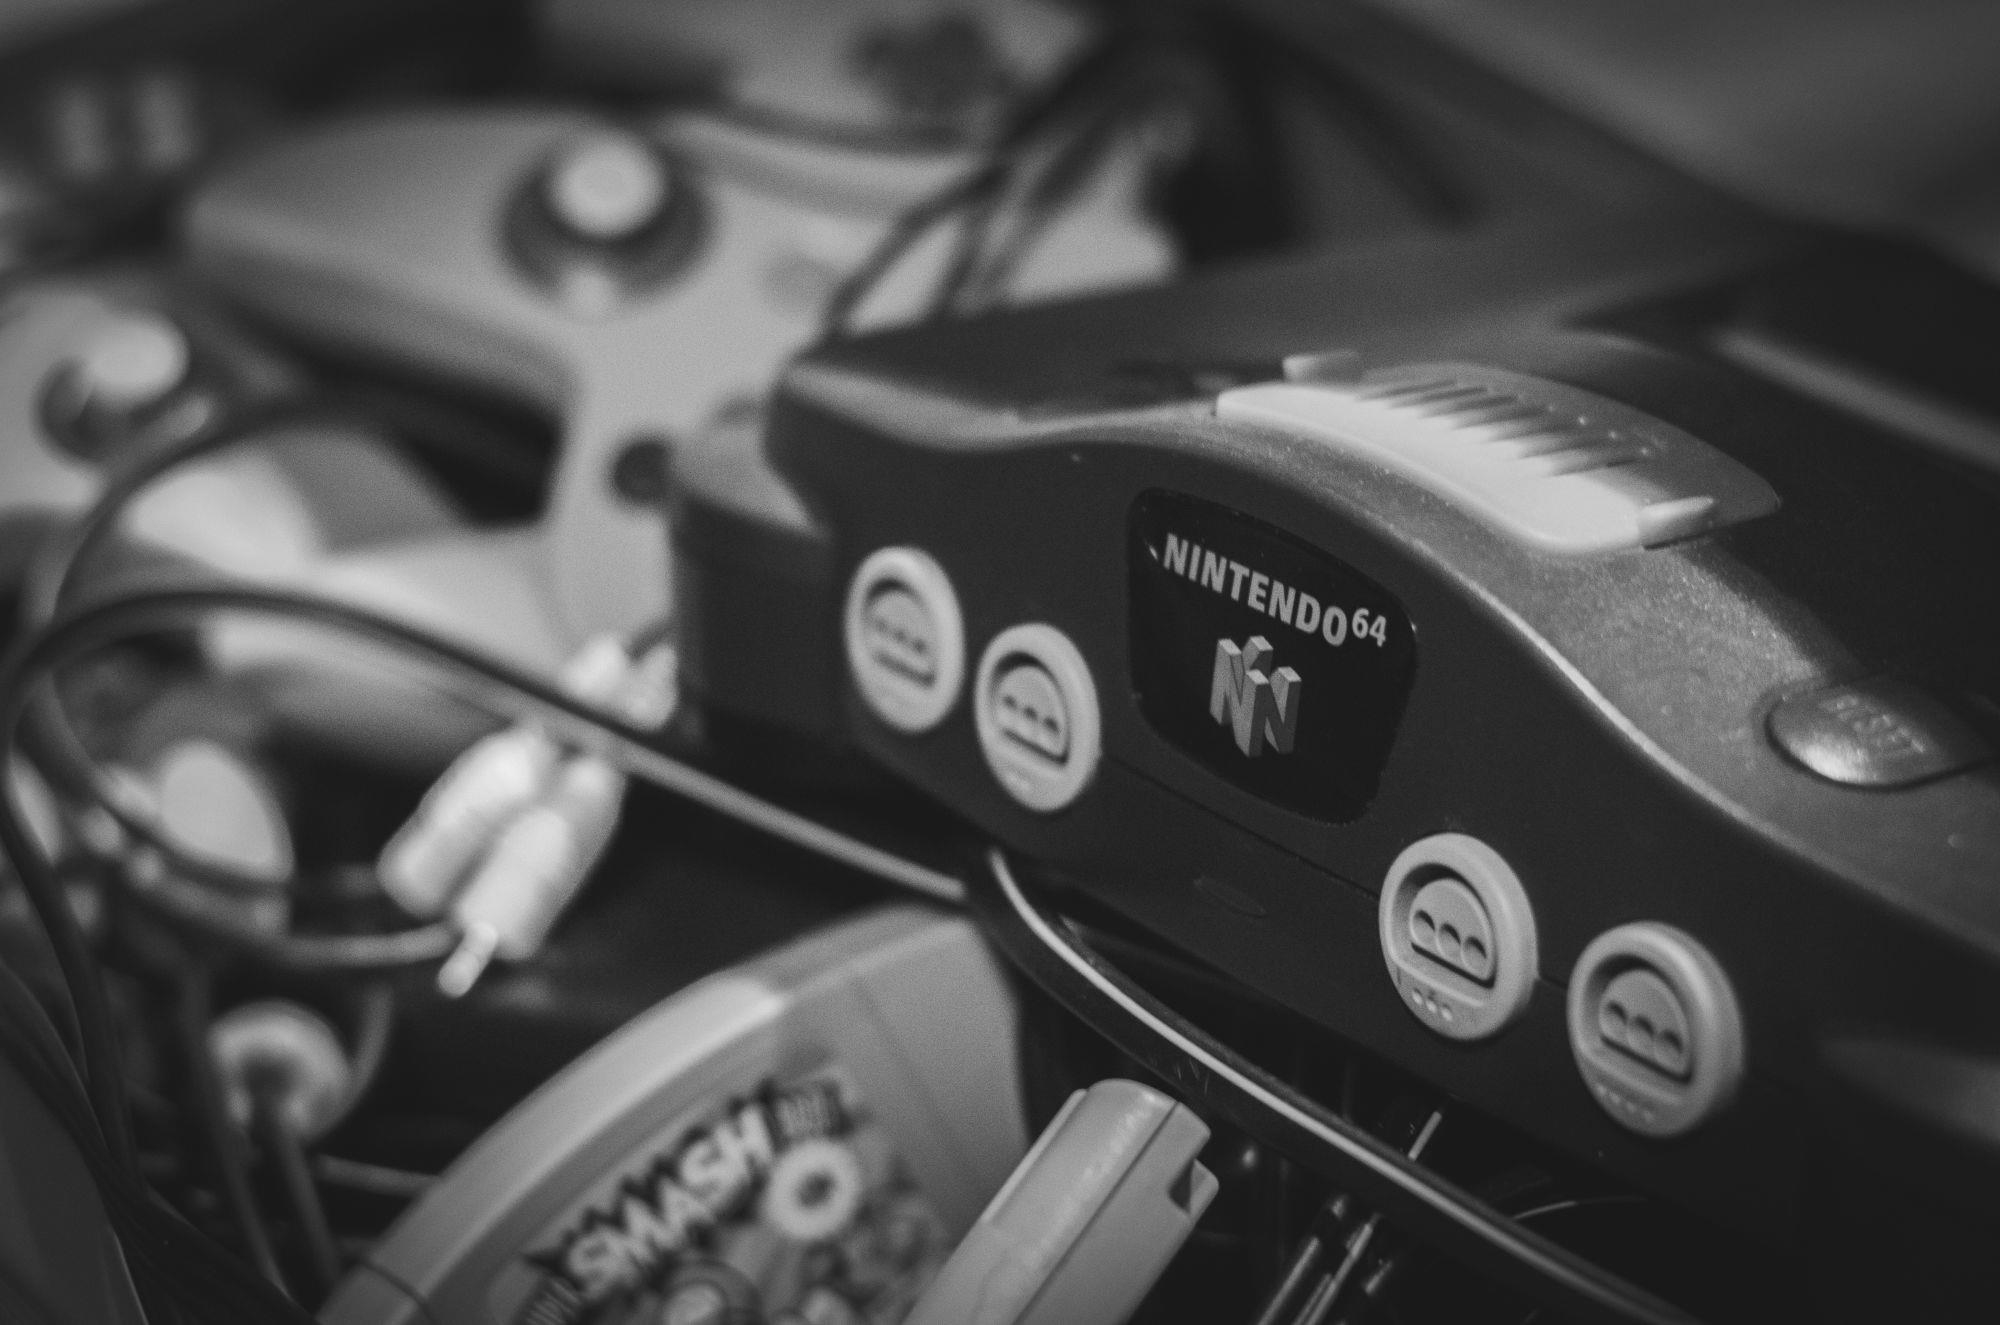 This week in tech history: Nintendo's N64 goes on sale in Japan | DeviceDaily.com